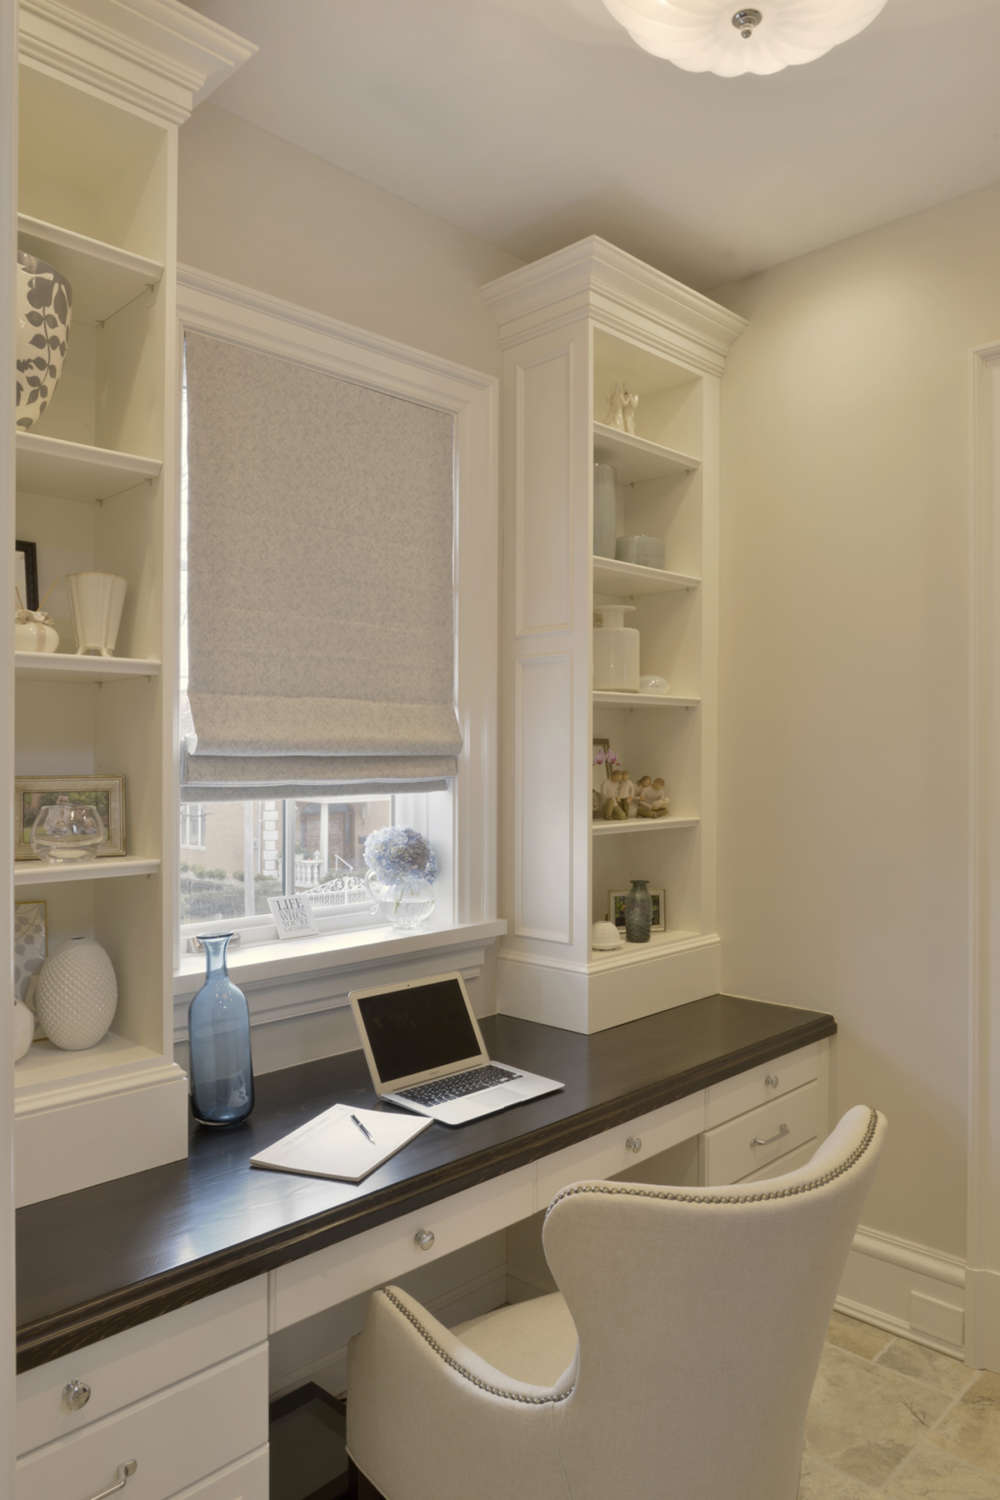 Home office features a classic white painted, custom desk with round polished stainless hardware and espresso brown top. The desk is positioned under a window with flax colored roman fabric shade flanked by custom white painted built-in open shelving. Design by Tom Vecchio of Bilotta Kitchens.